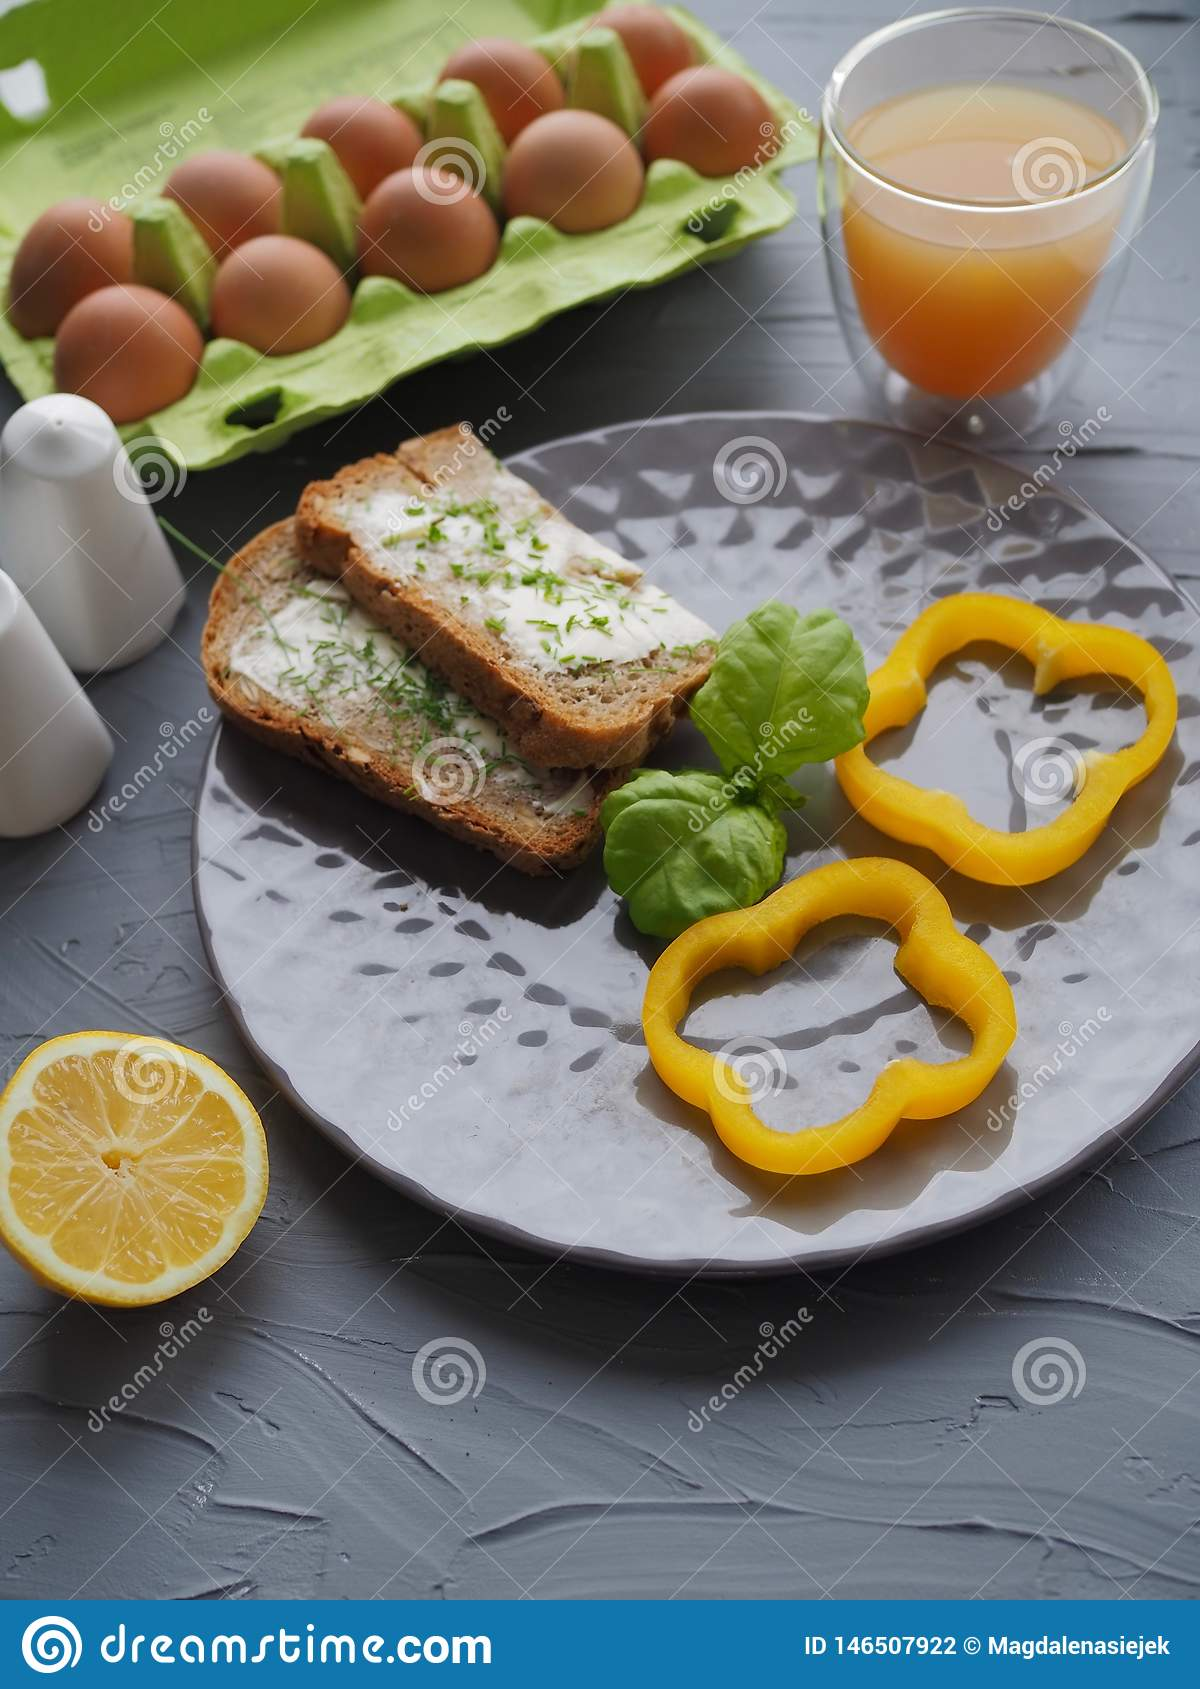 Healthy breakfast with home made bread and eggs and orange juice on grey plate and grey background ideal for culinary blogger or c